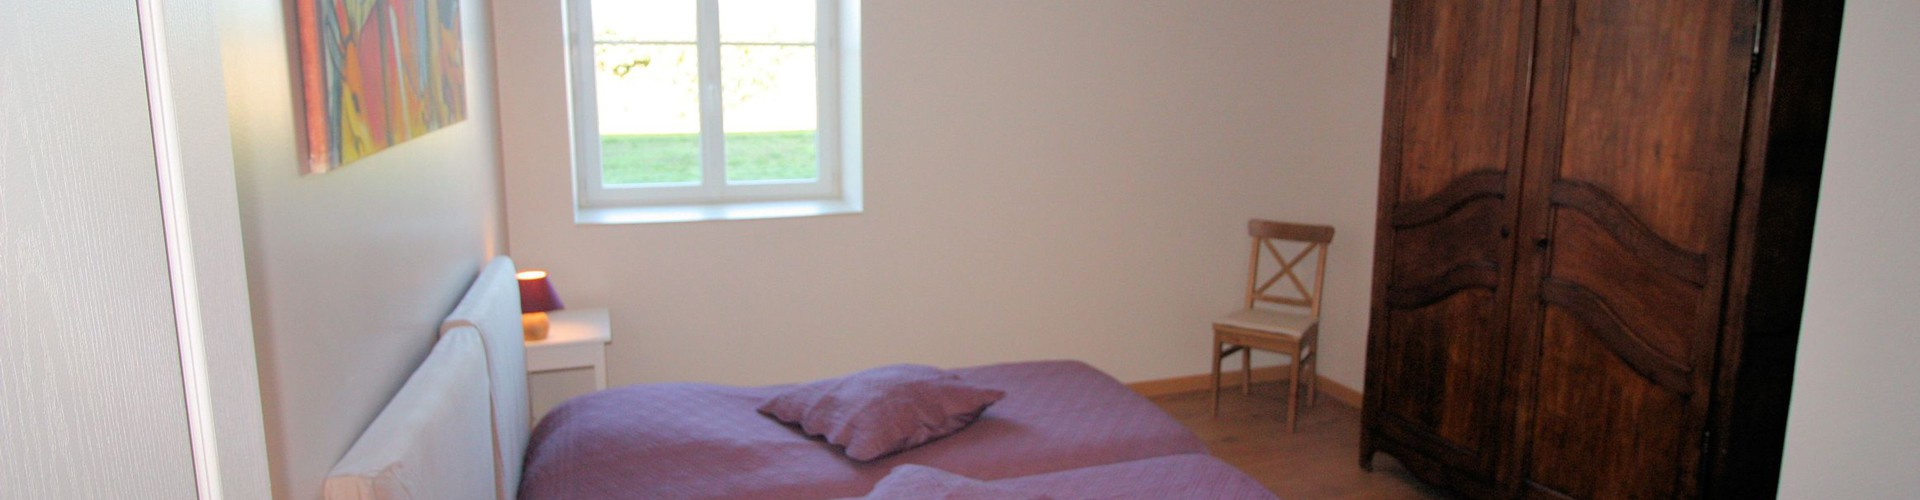 Ferme d'Orsonville - Living Cottage - Bedroom Macke